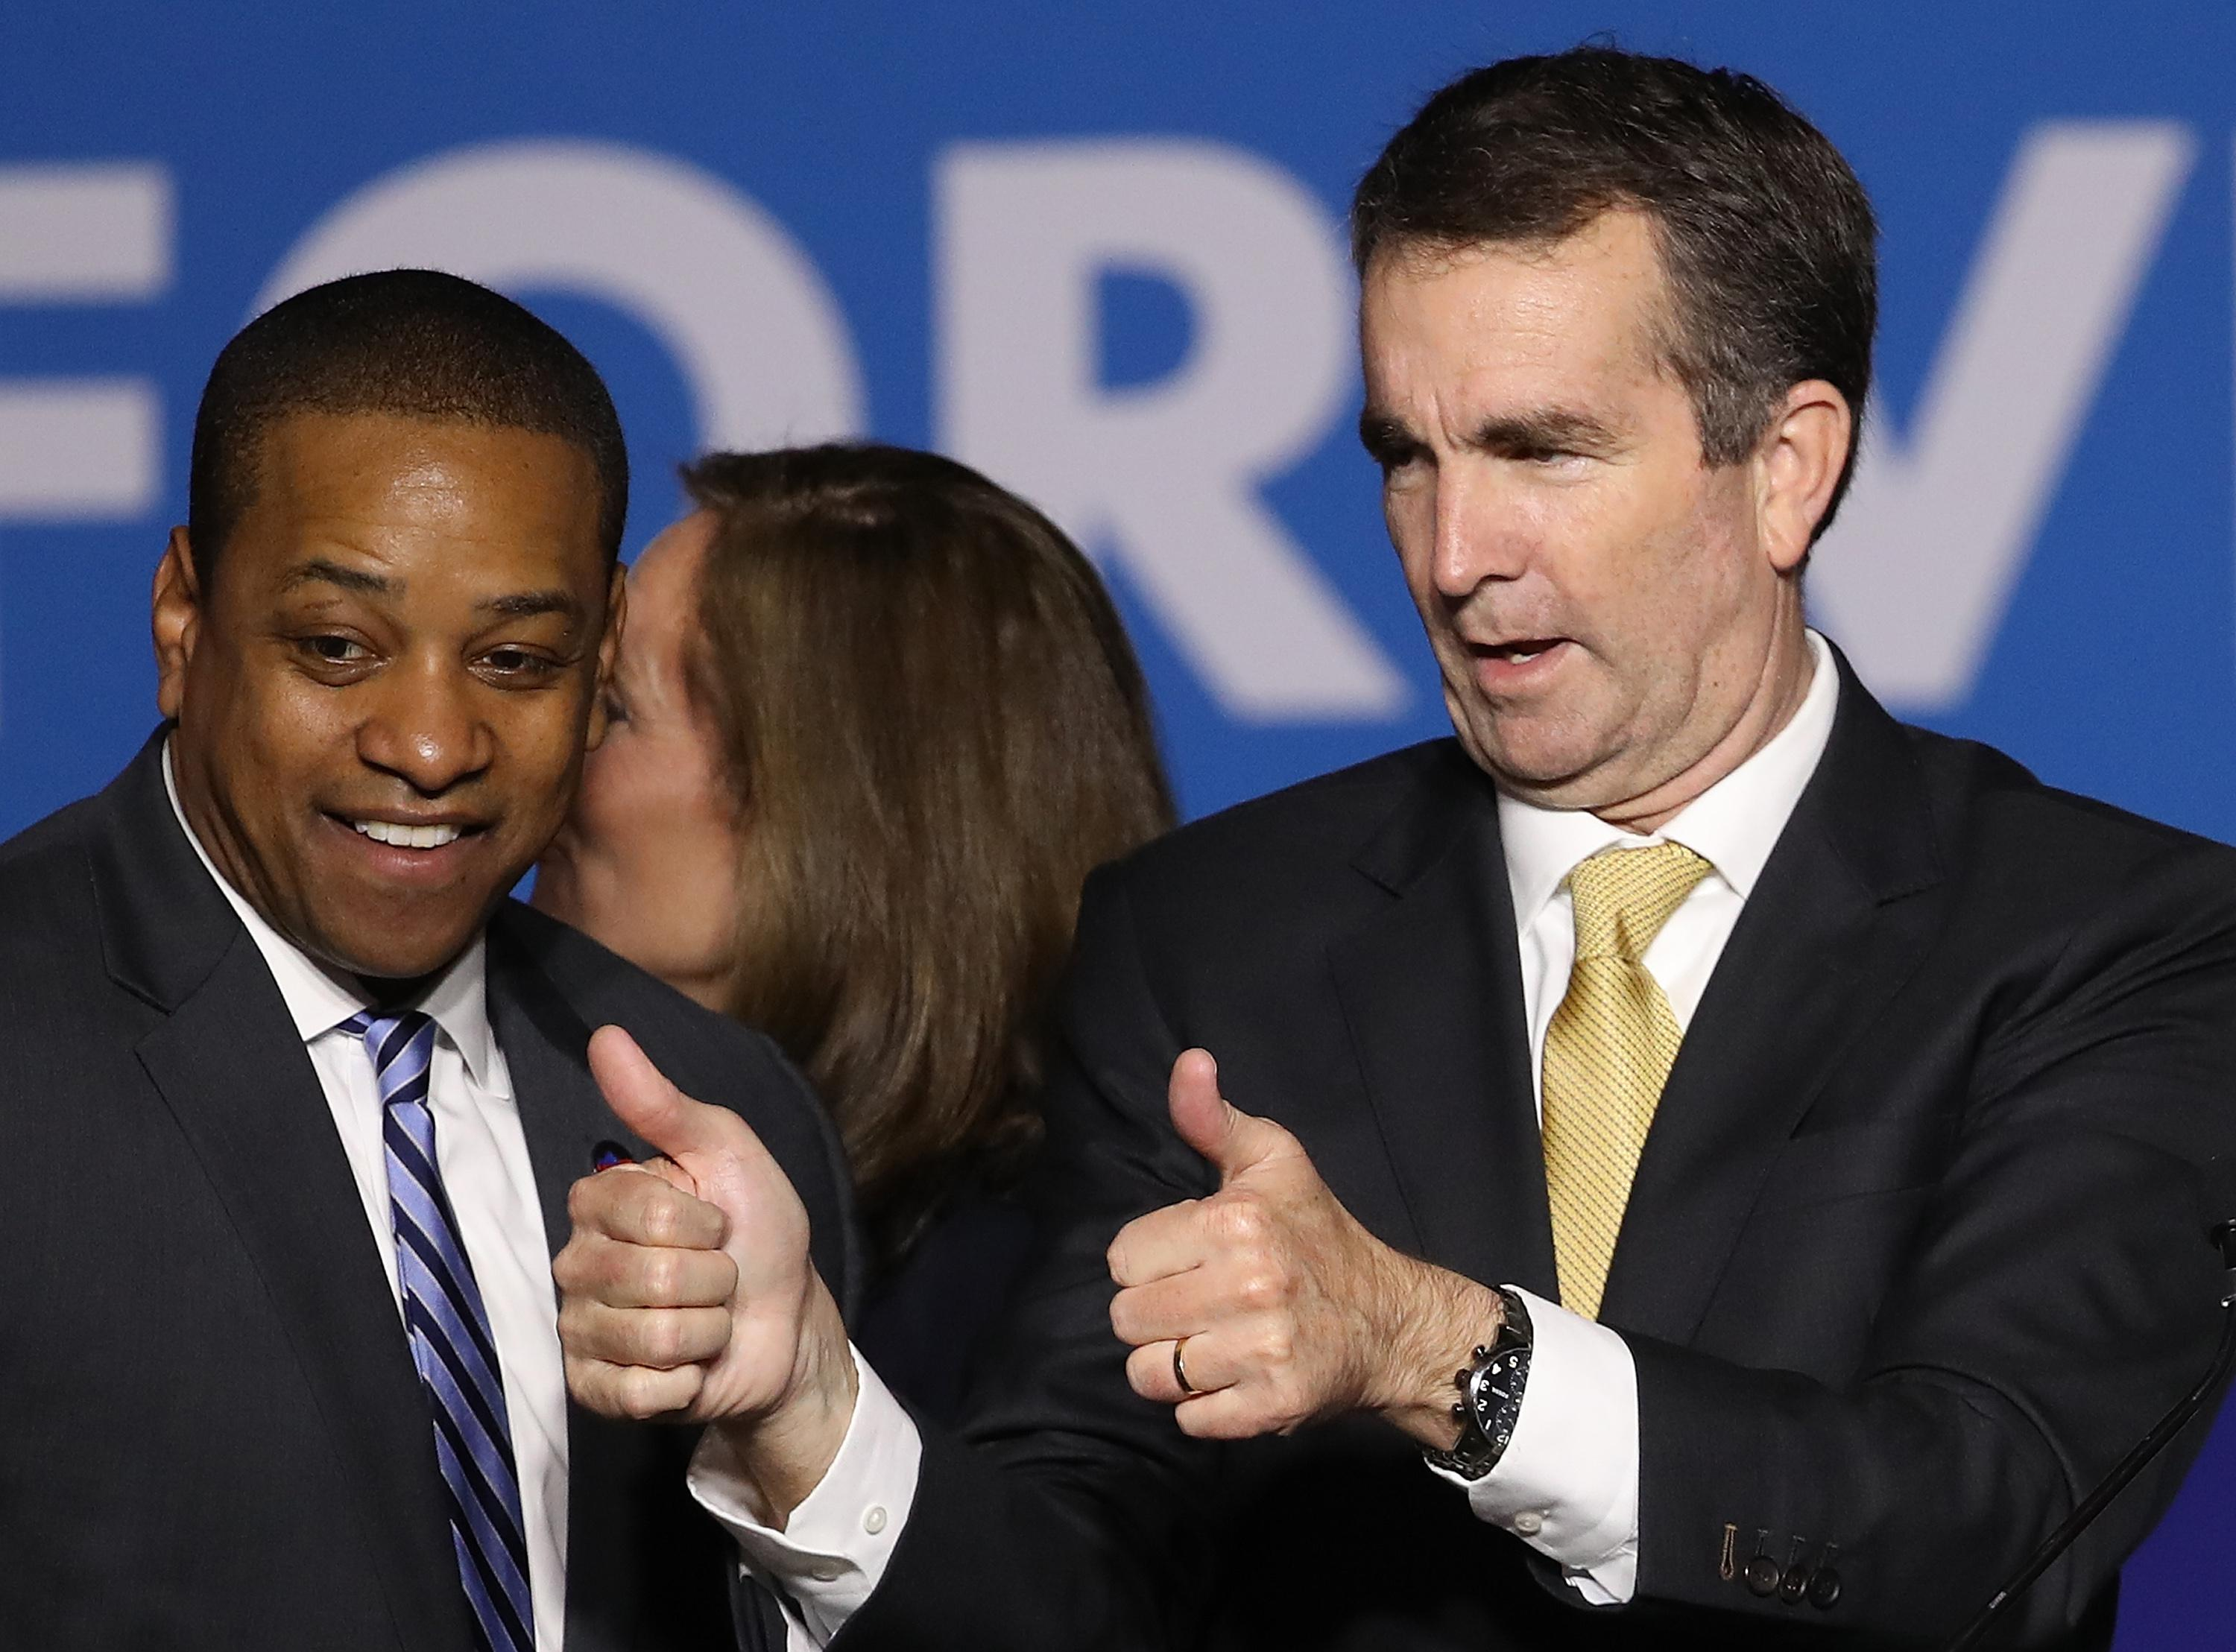 Fairfax smiles and Northam gives a thumbs-up in a campaign night photo.